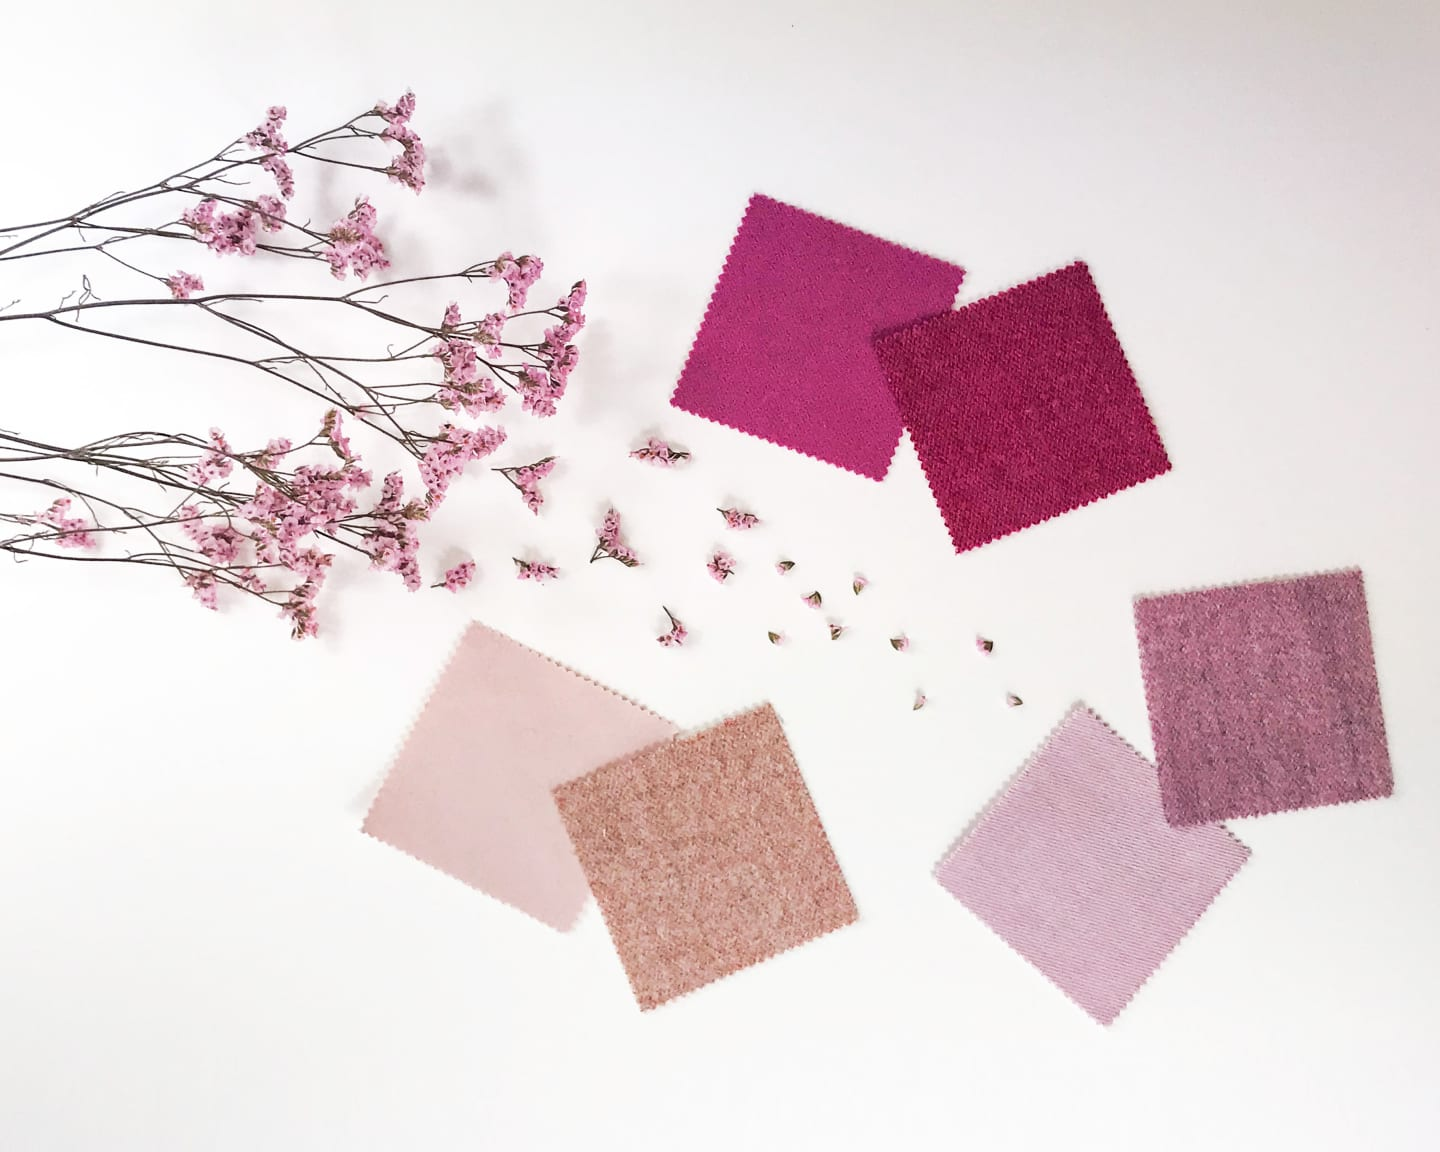 Pink fabric samples with pink flowers